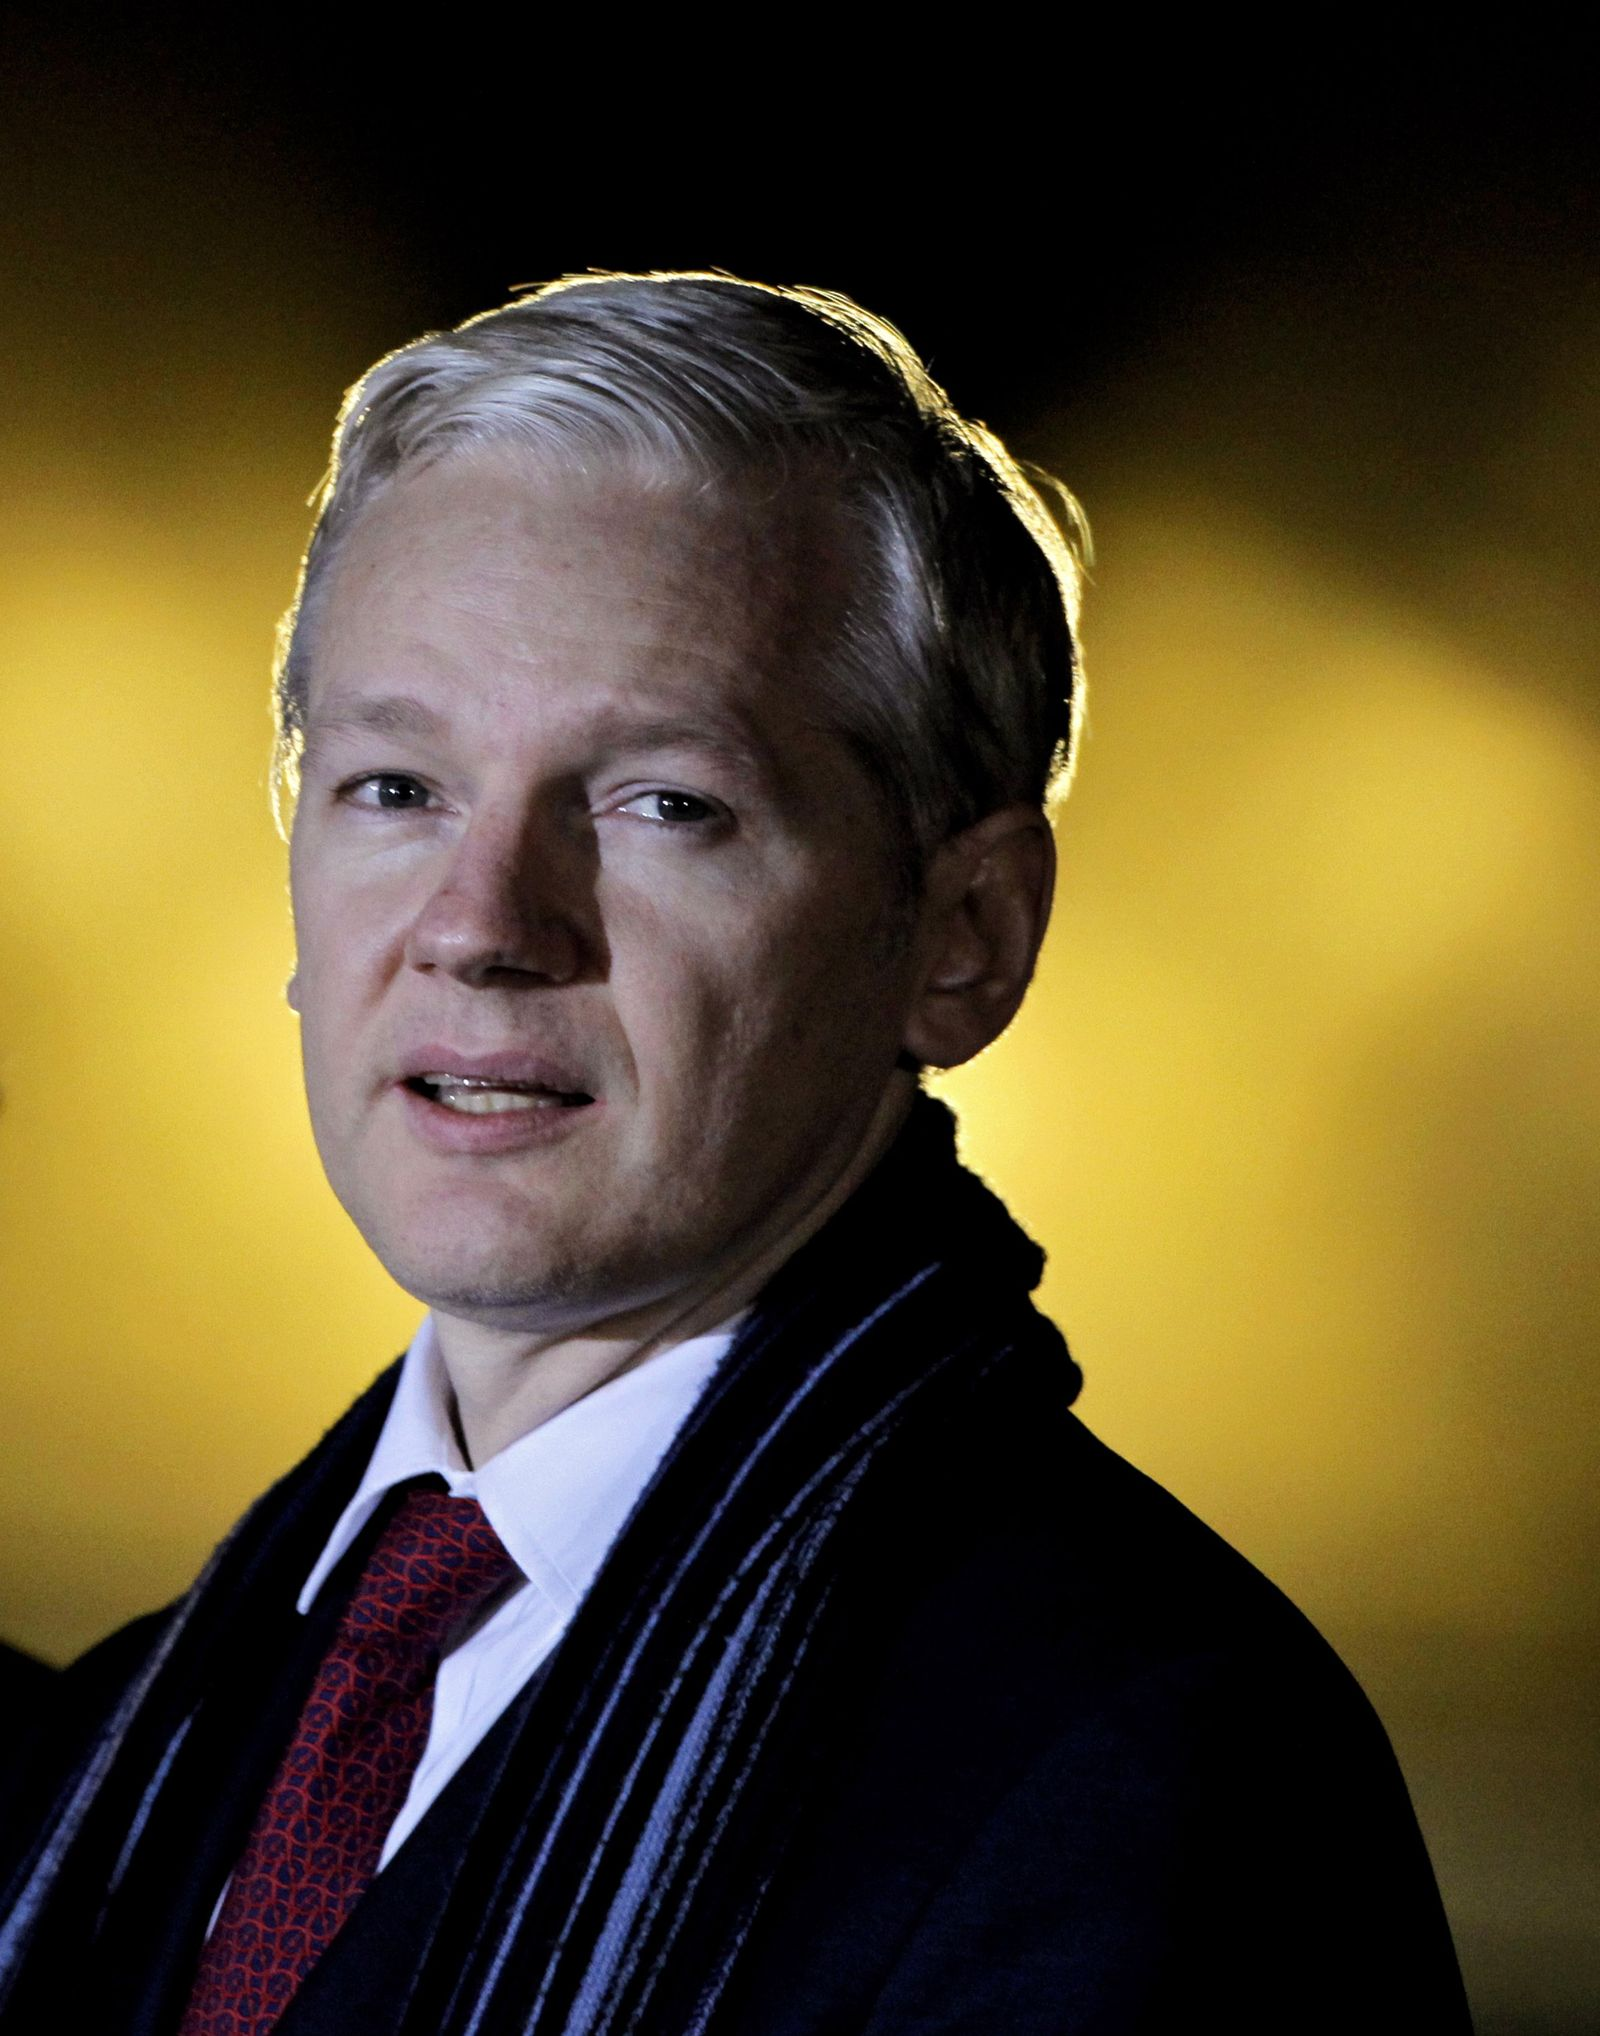 Wikileaks Founder Julian Assange in Court for Extradition Hearing